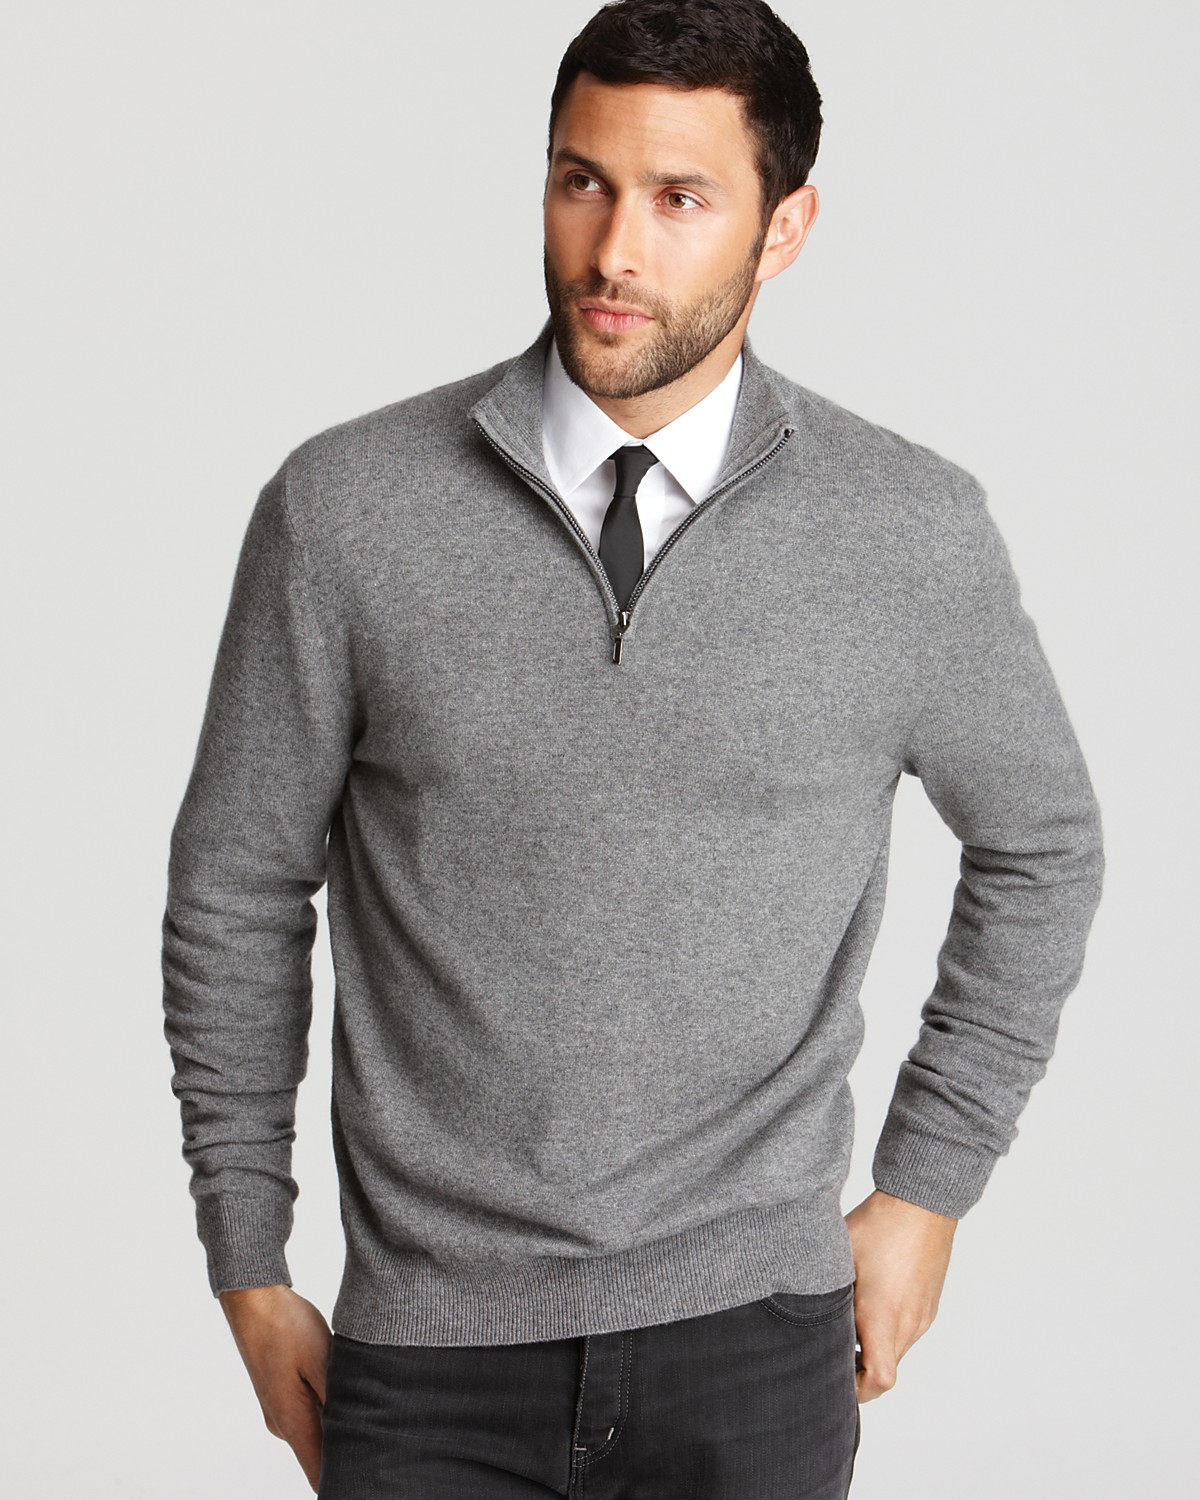 Sweater Over Button Shirt Collar Men Out